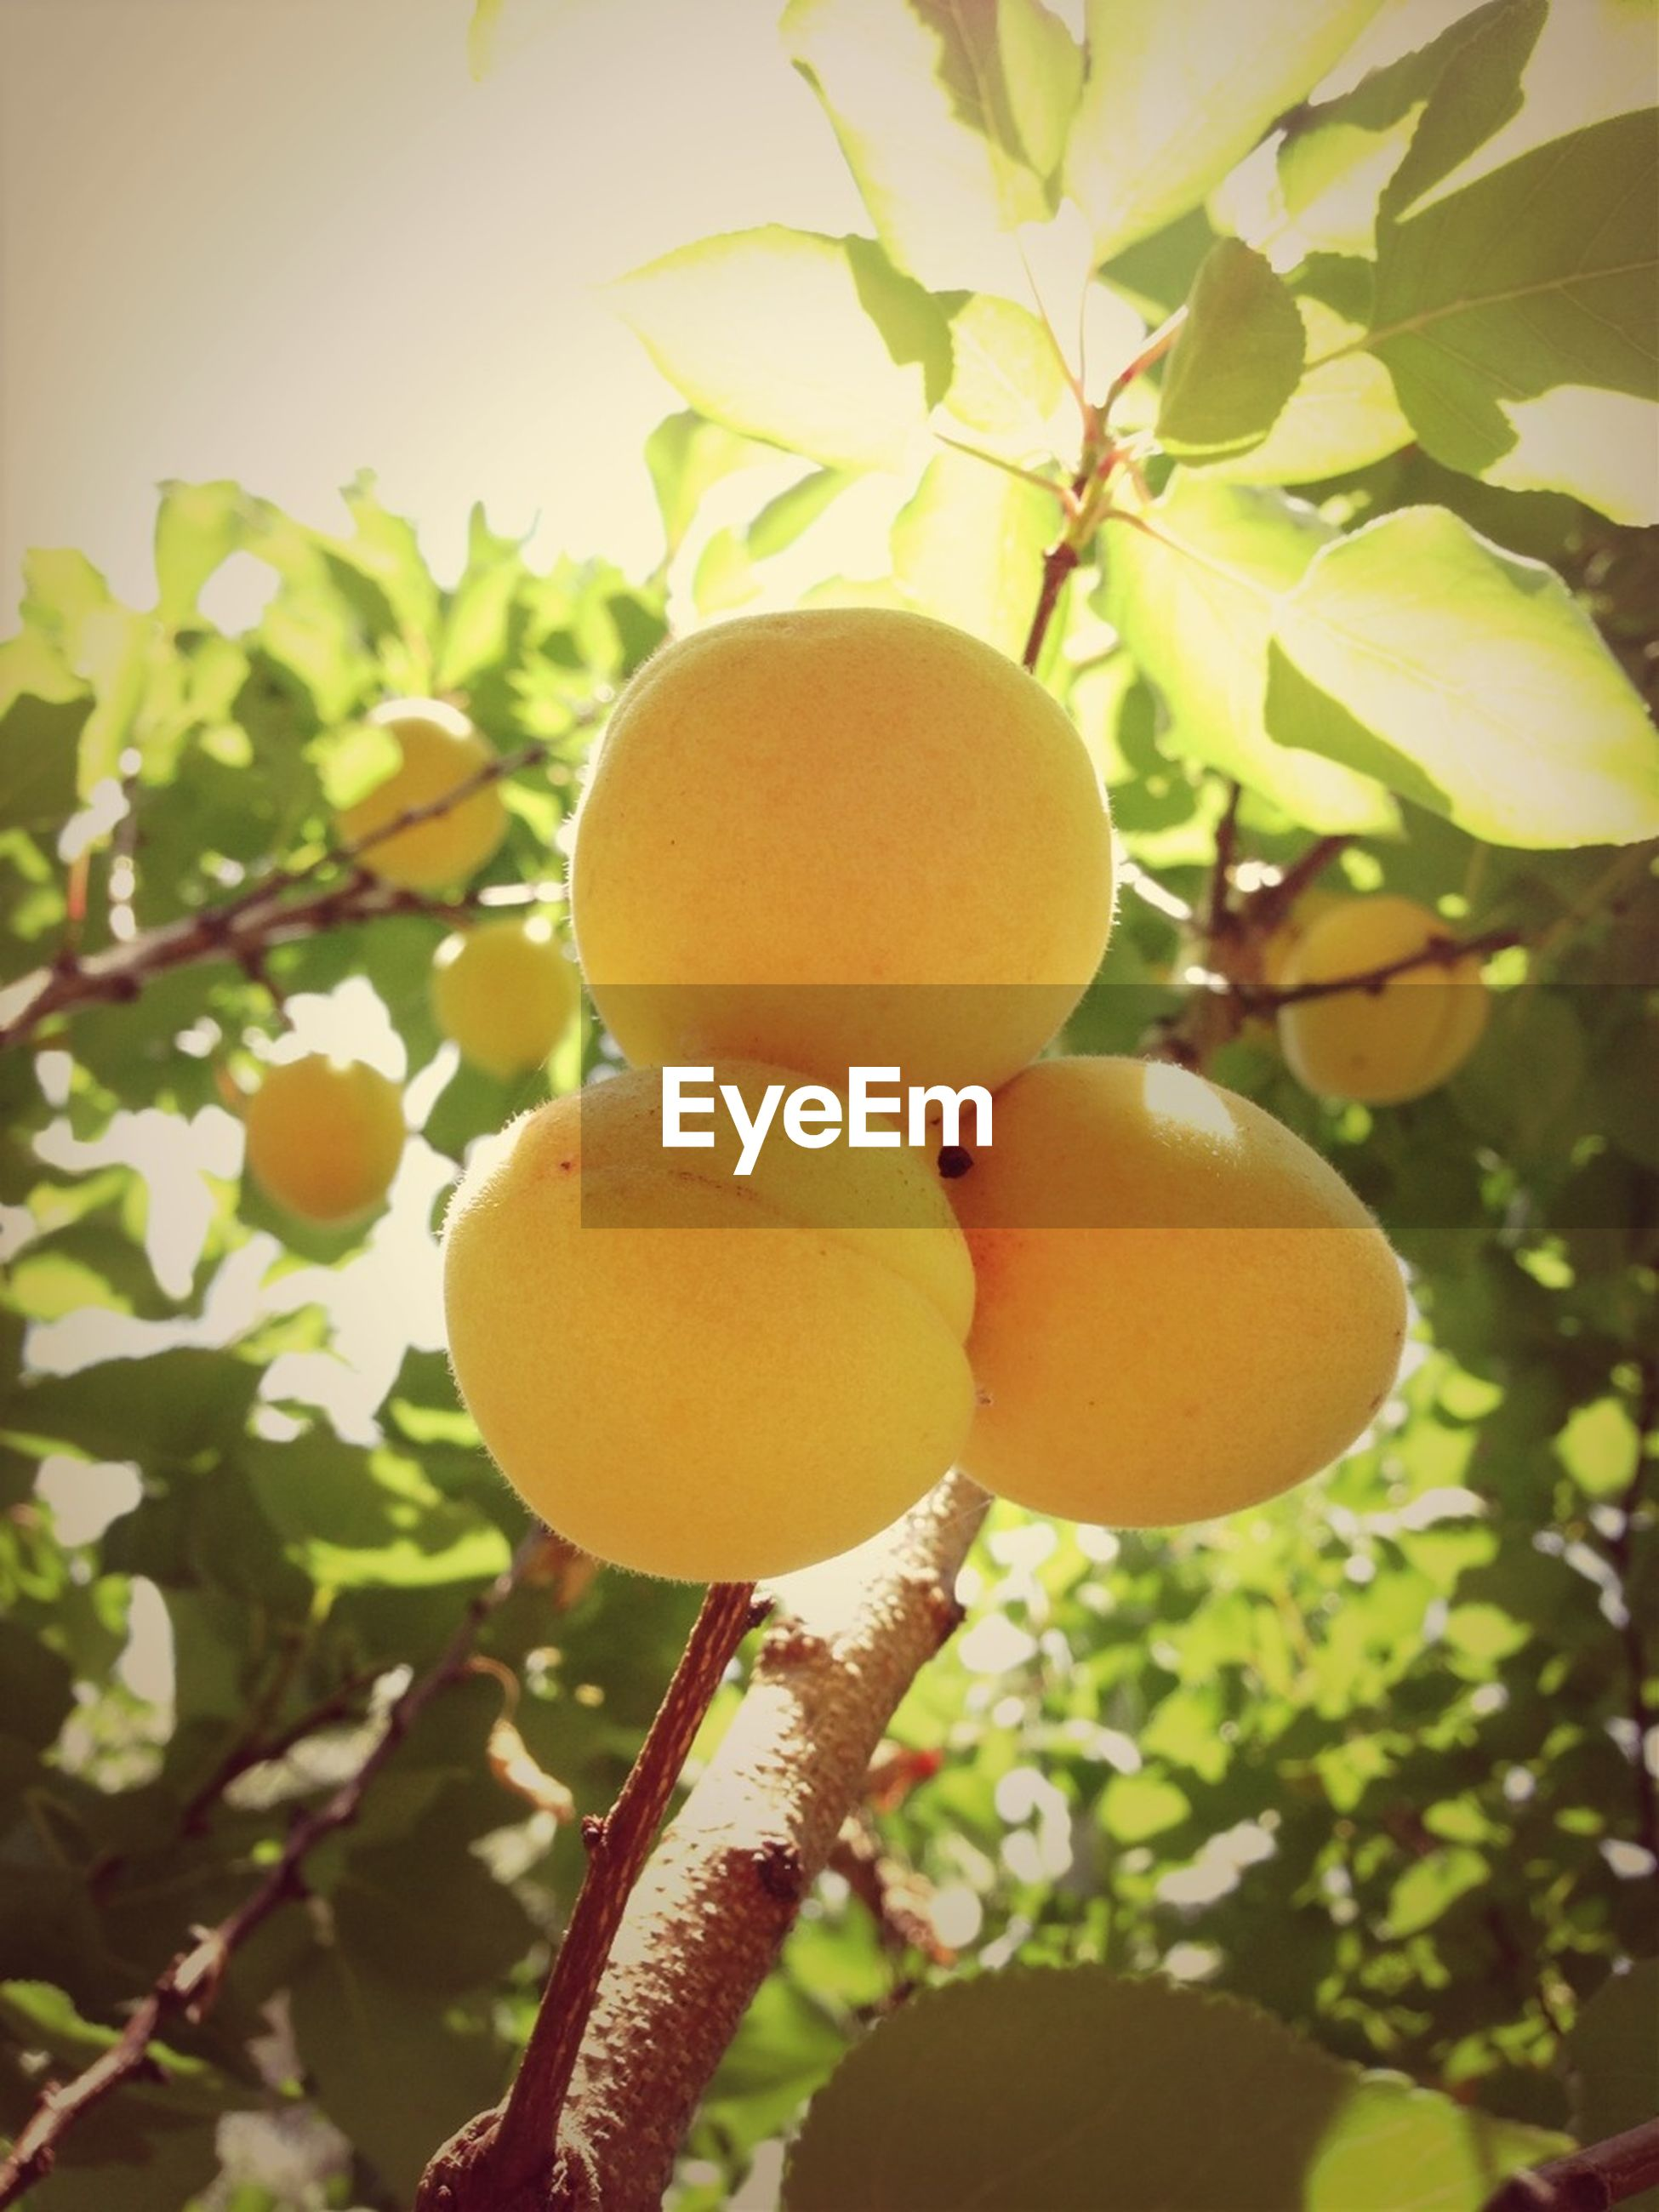 food and drink, fruit, food, healthy eating, freshness, tree, growth, close-up, branch, ripe, focus on foreground, hanging, orange - fruit, leaf, citrus fruit, nature, apple - fruit, green color, organic, growing